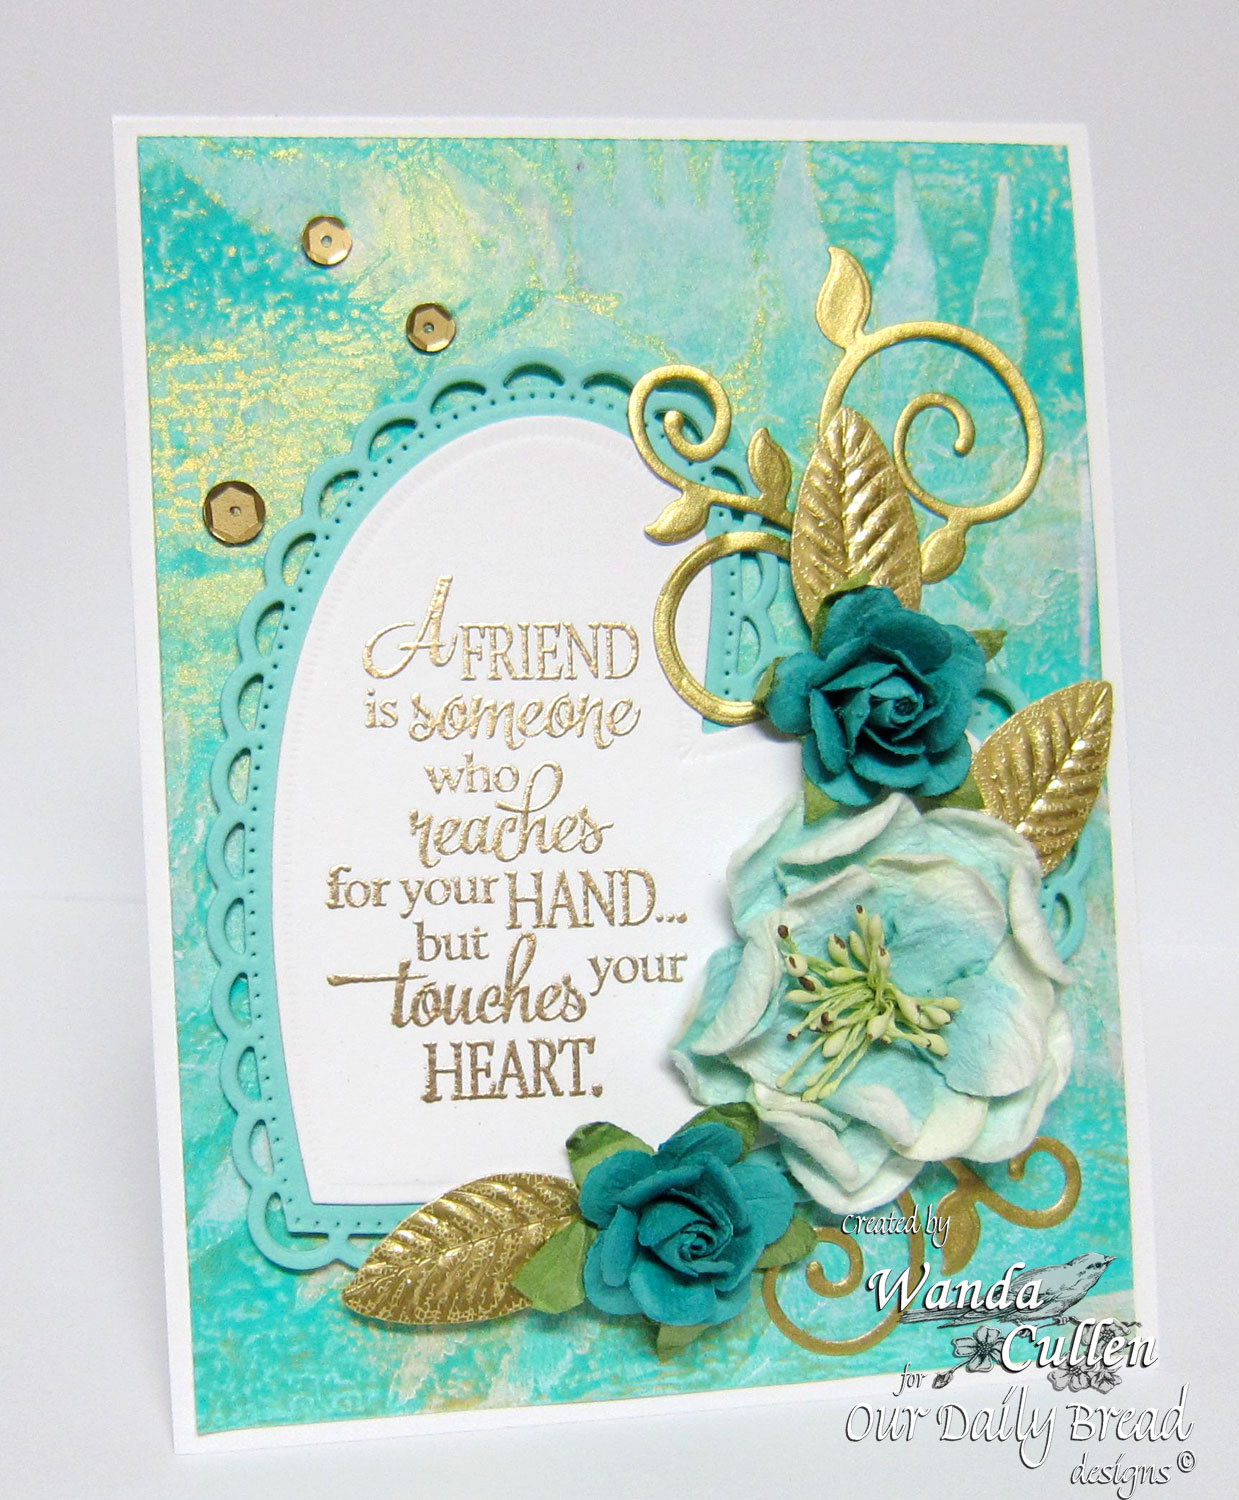 Stamps - Our Daily Bread Designs Quote Collection 4, ODBD Custom Fancy Foliage Dies, ODBD Custom Ornate Hearts Die